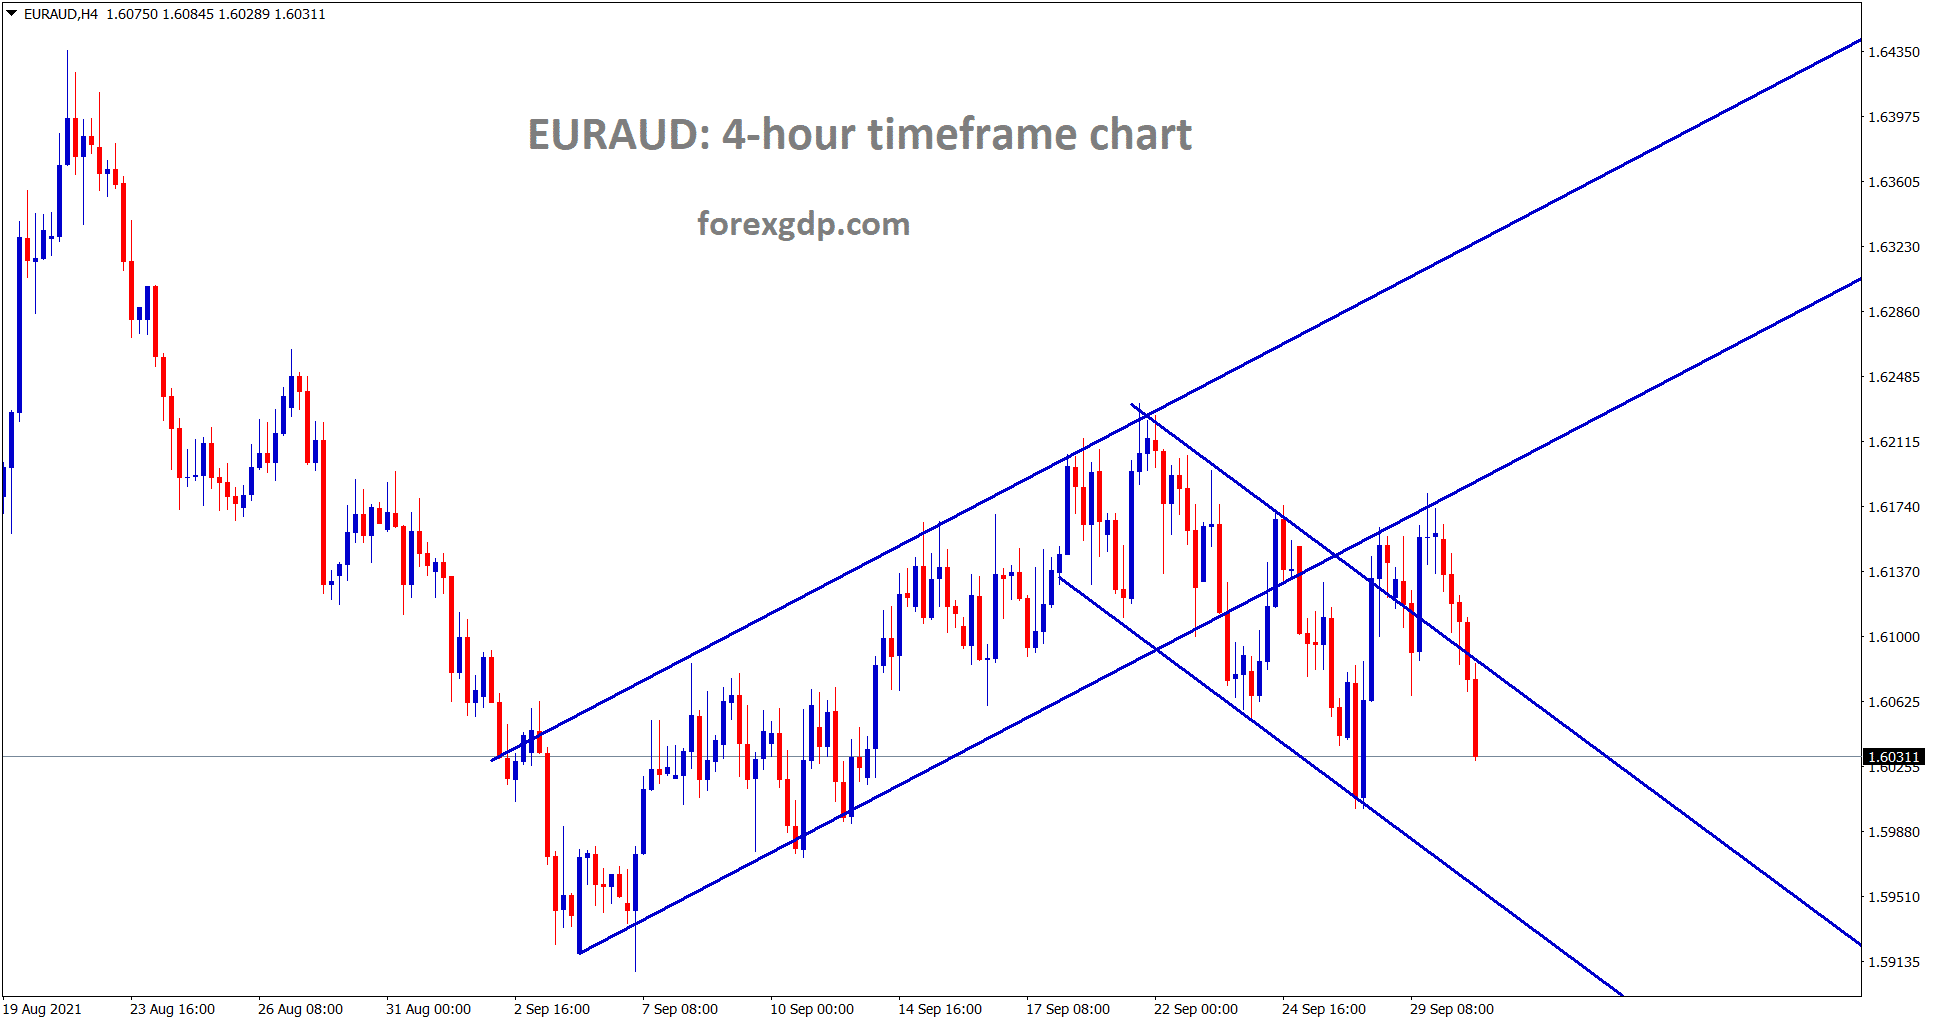 EURAUD is falling now after retesting the previous ascending channel